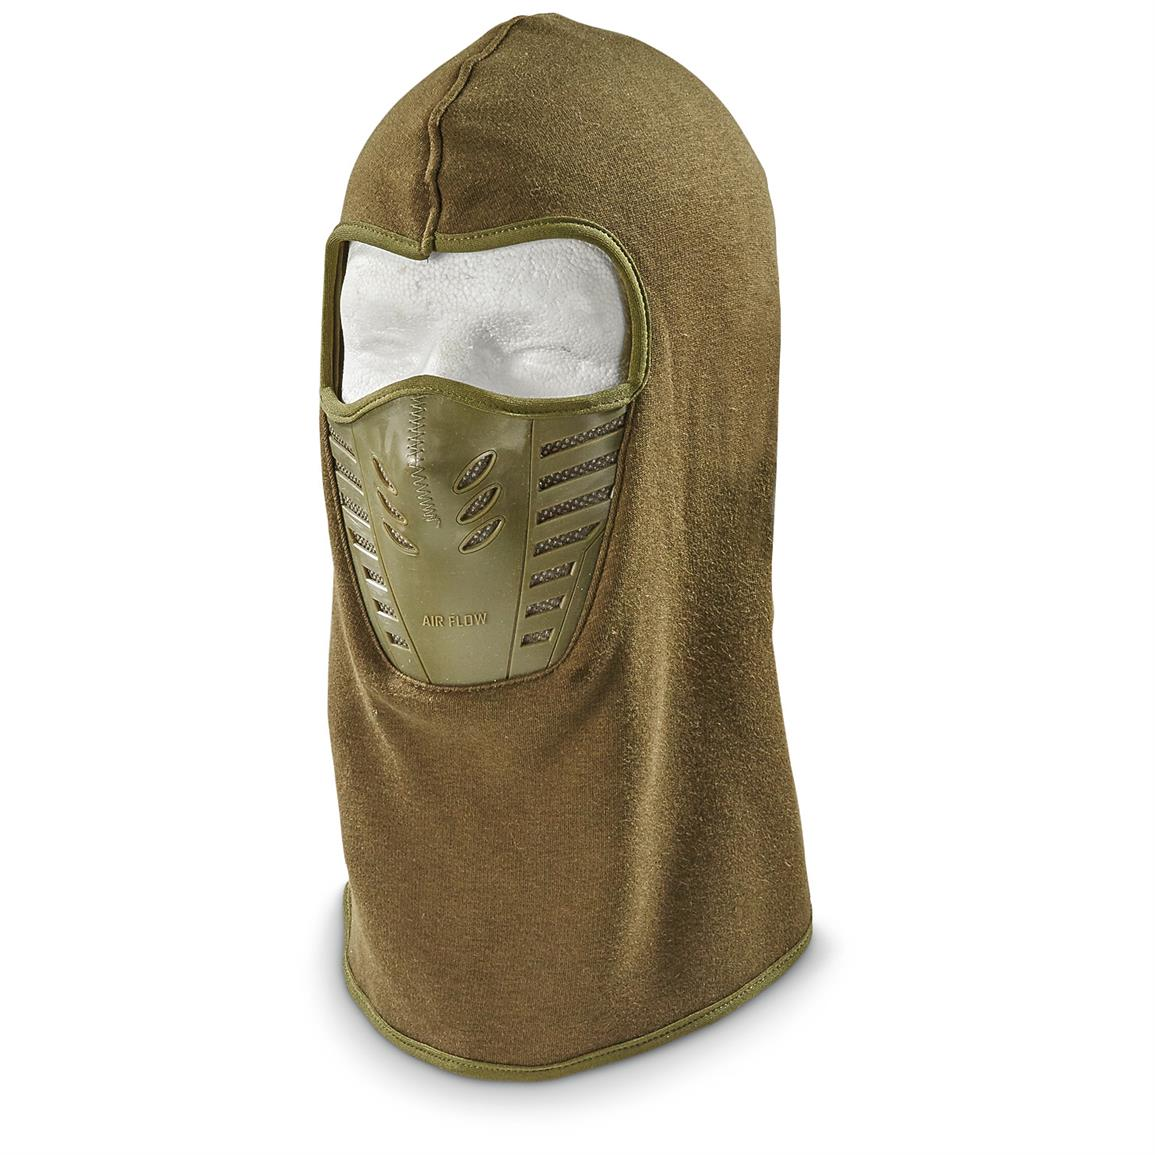 Red Rock Outdoor Gear Tactical Fleece Balaclava, 2 Pack, Olive Drab